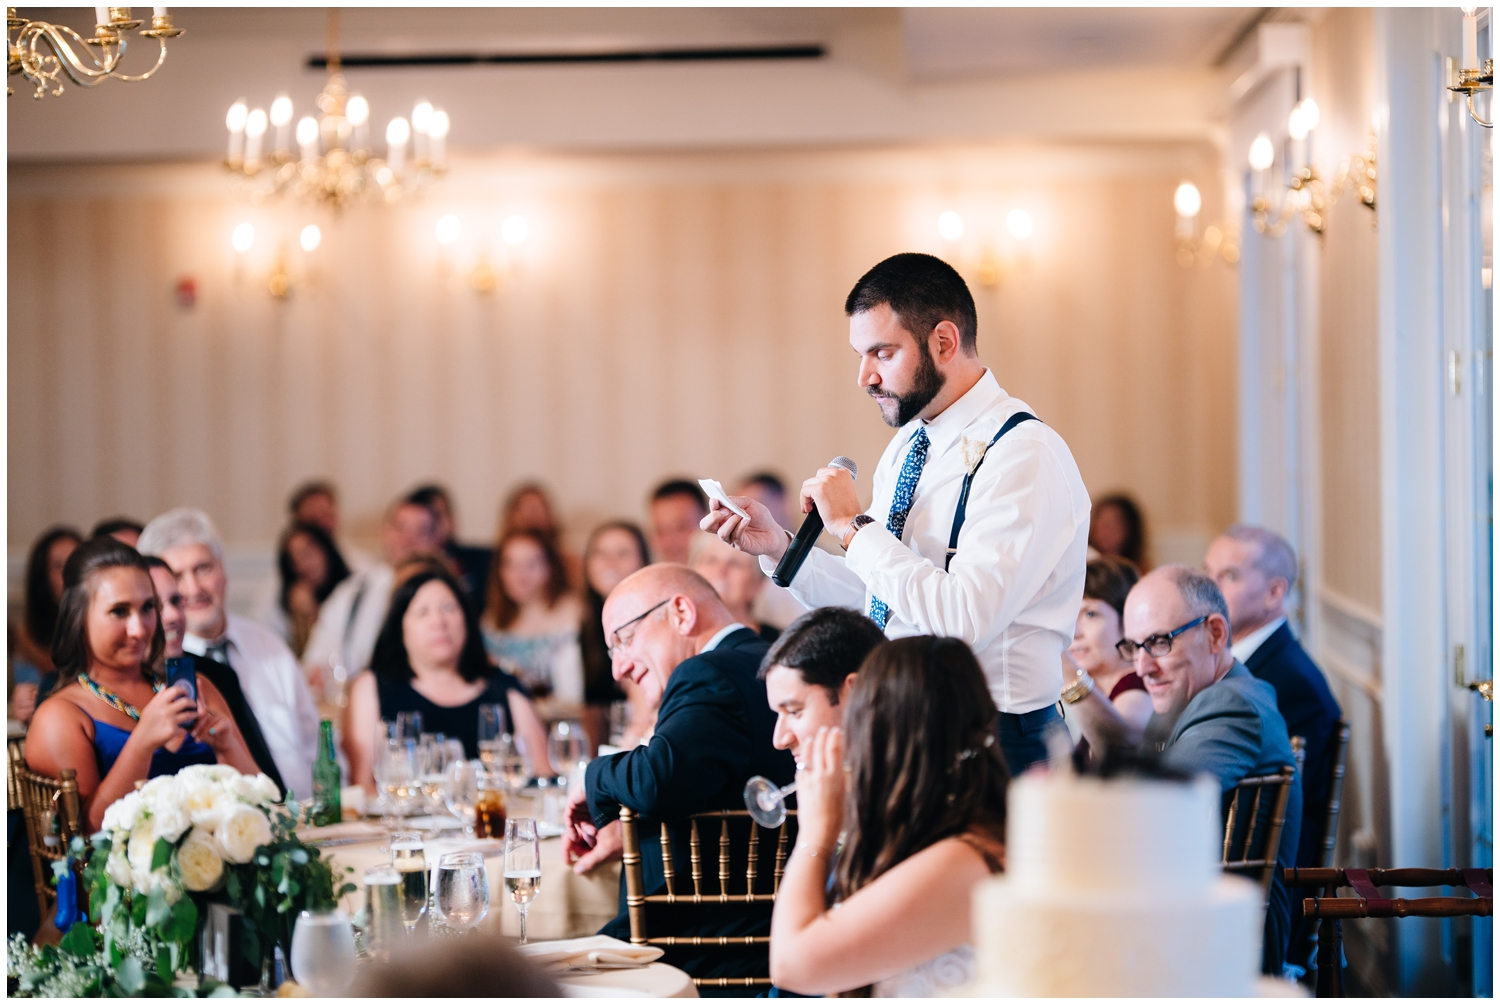 Madison Beach Hotel Wedding - Steven & Jessica_0201.jpg